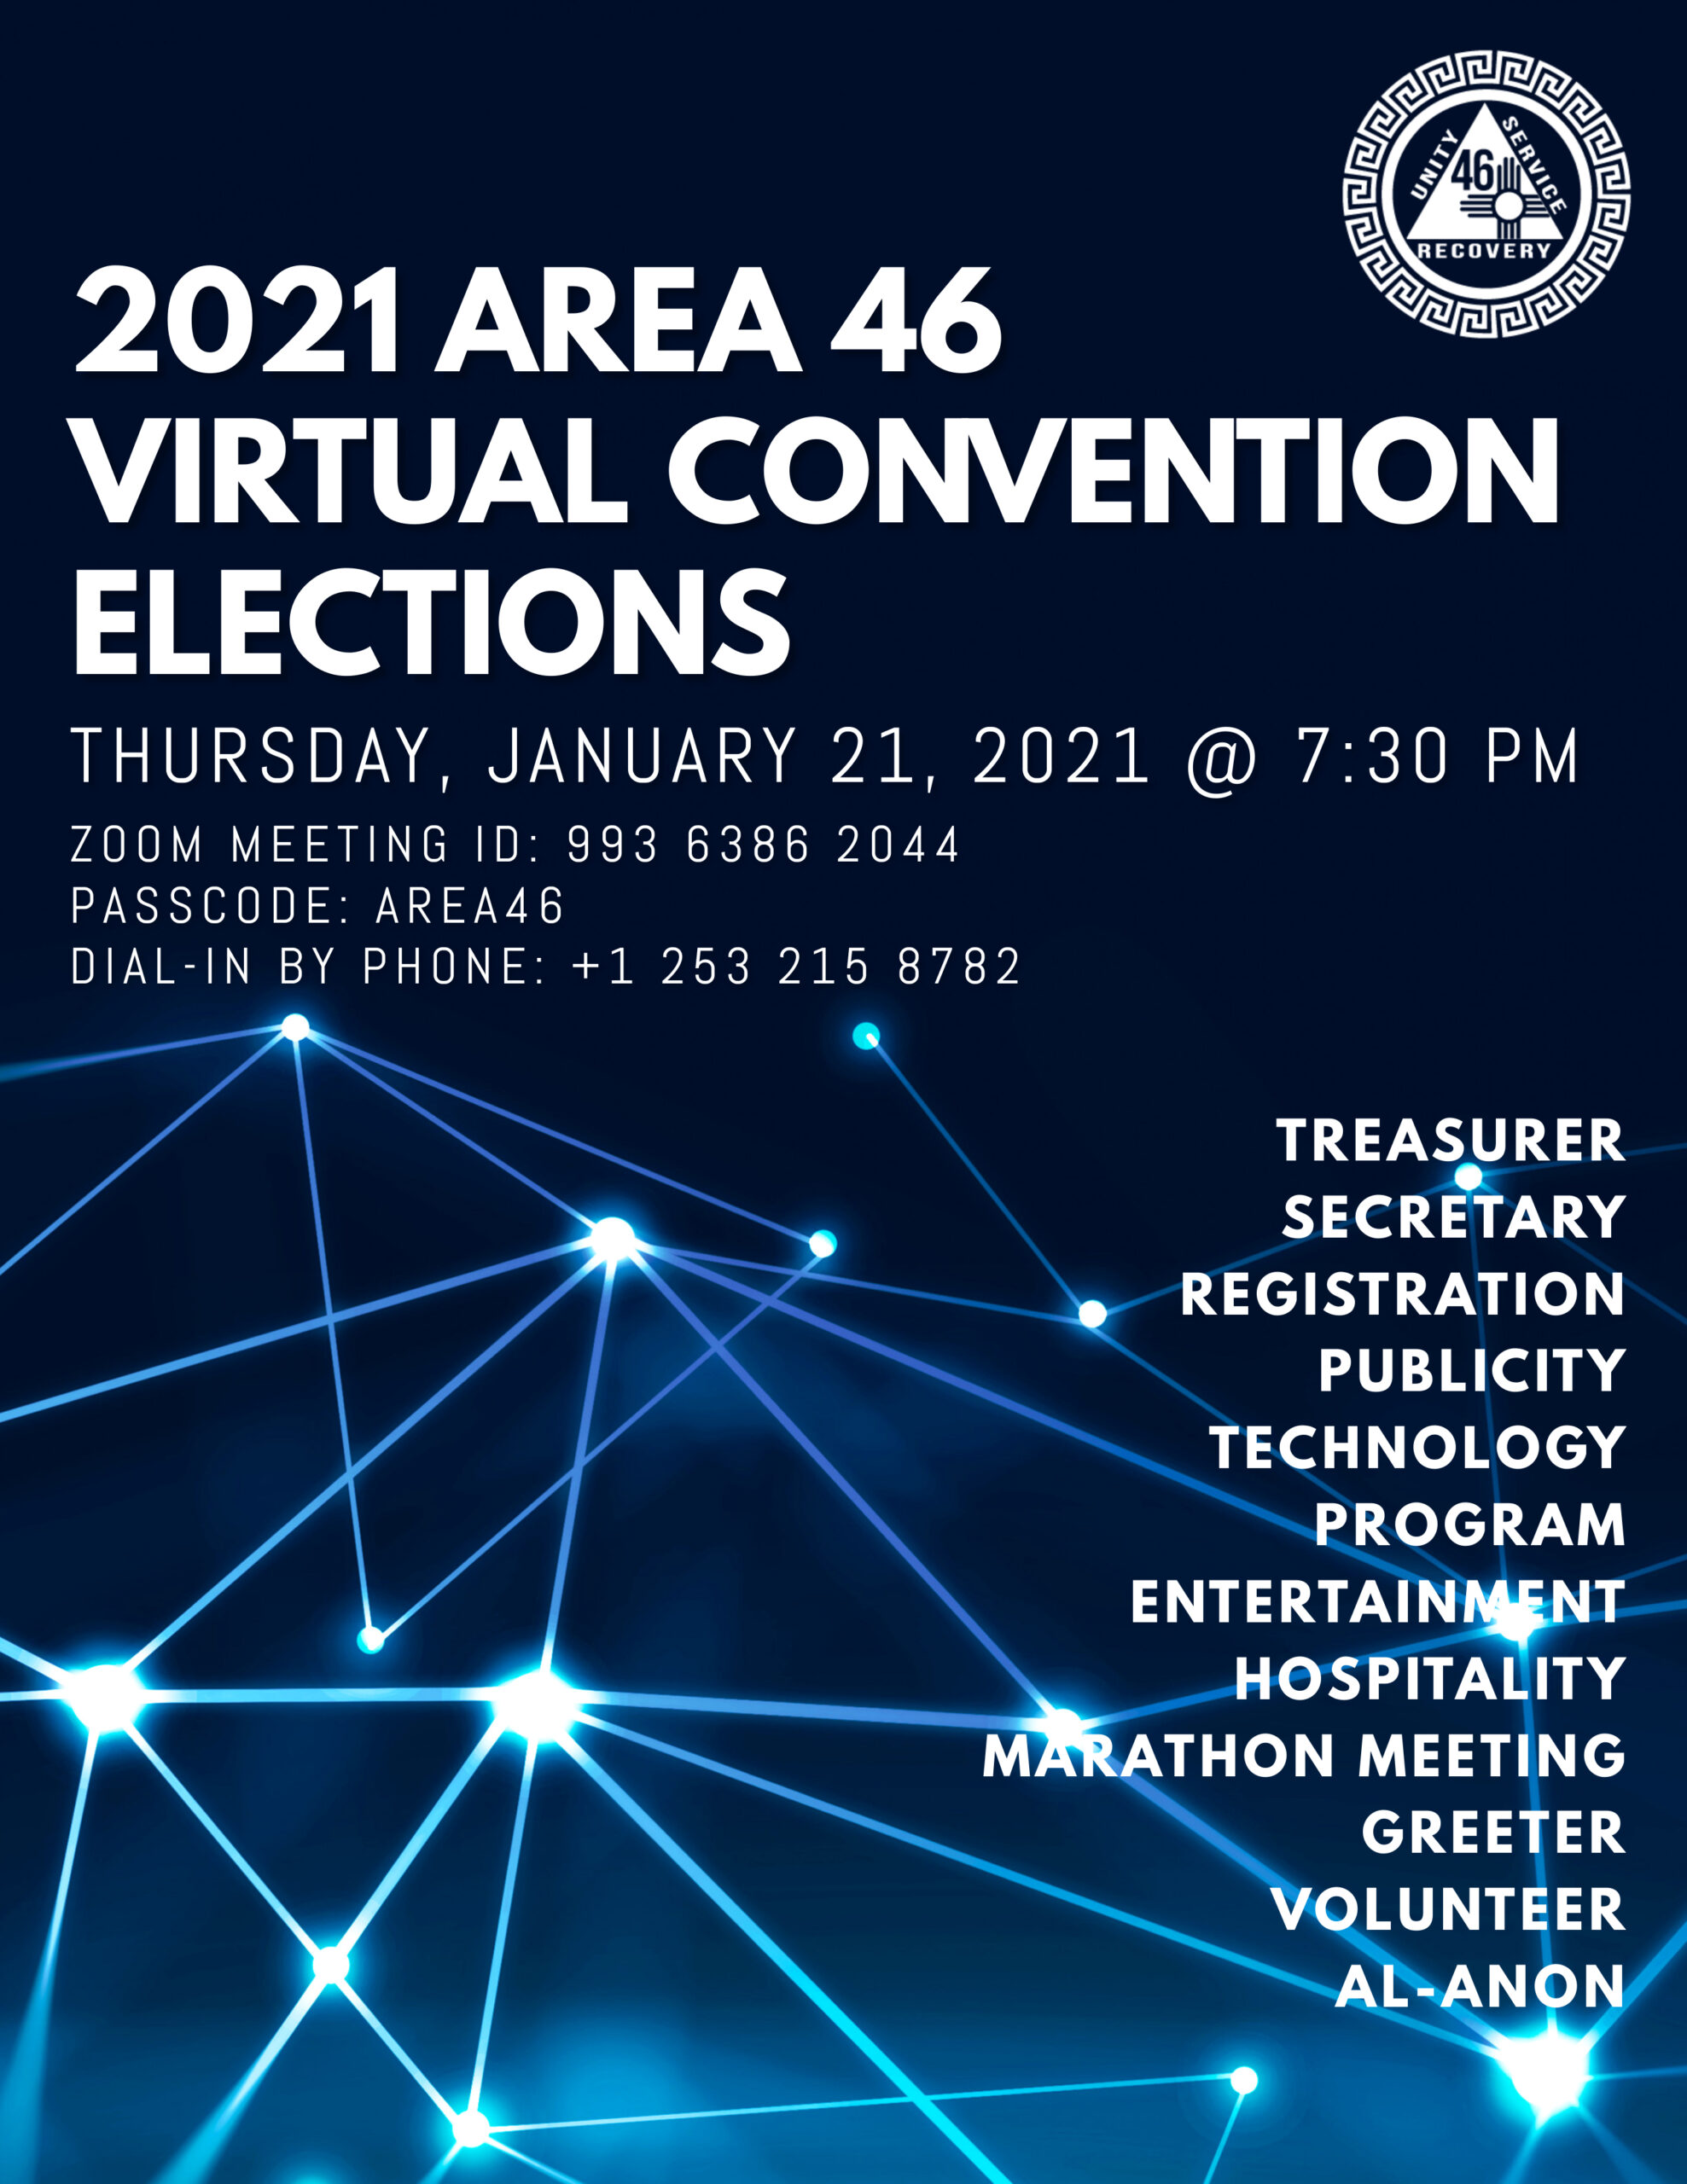 2021_A46_Convention_Elections